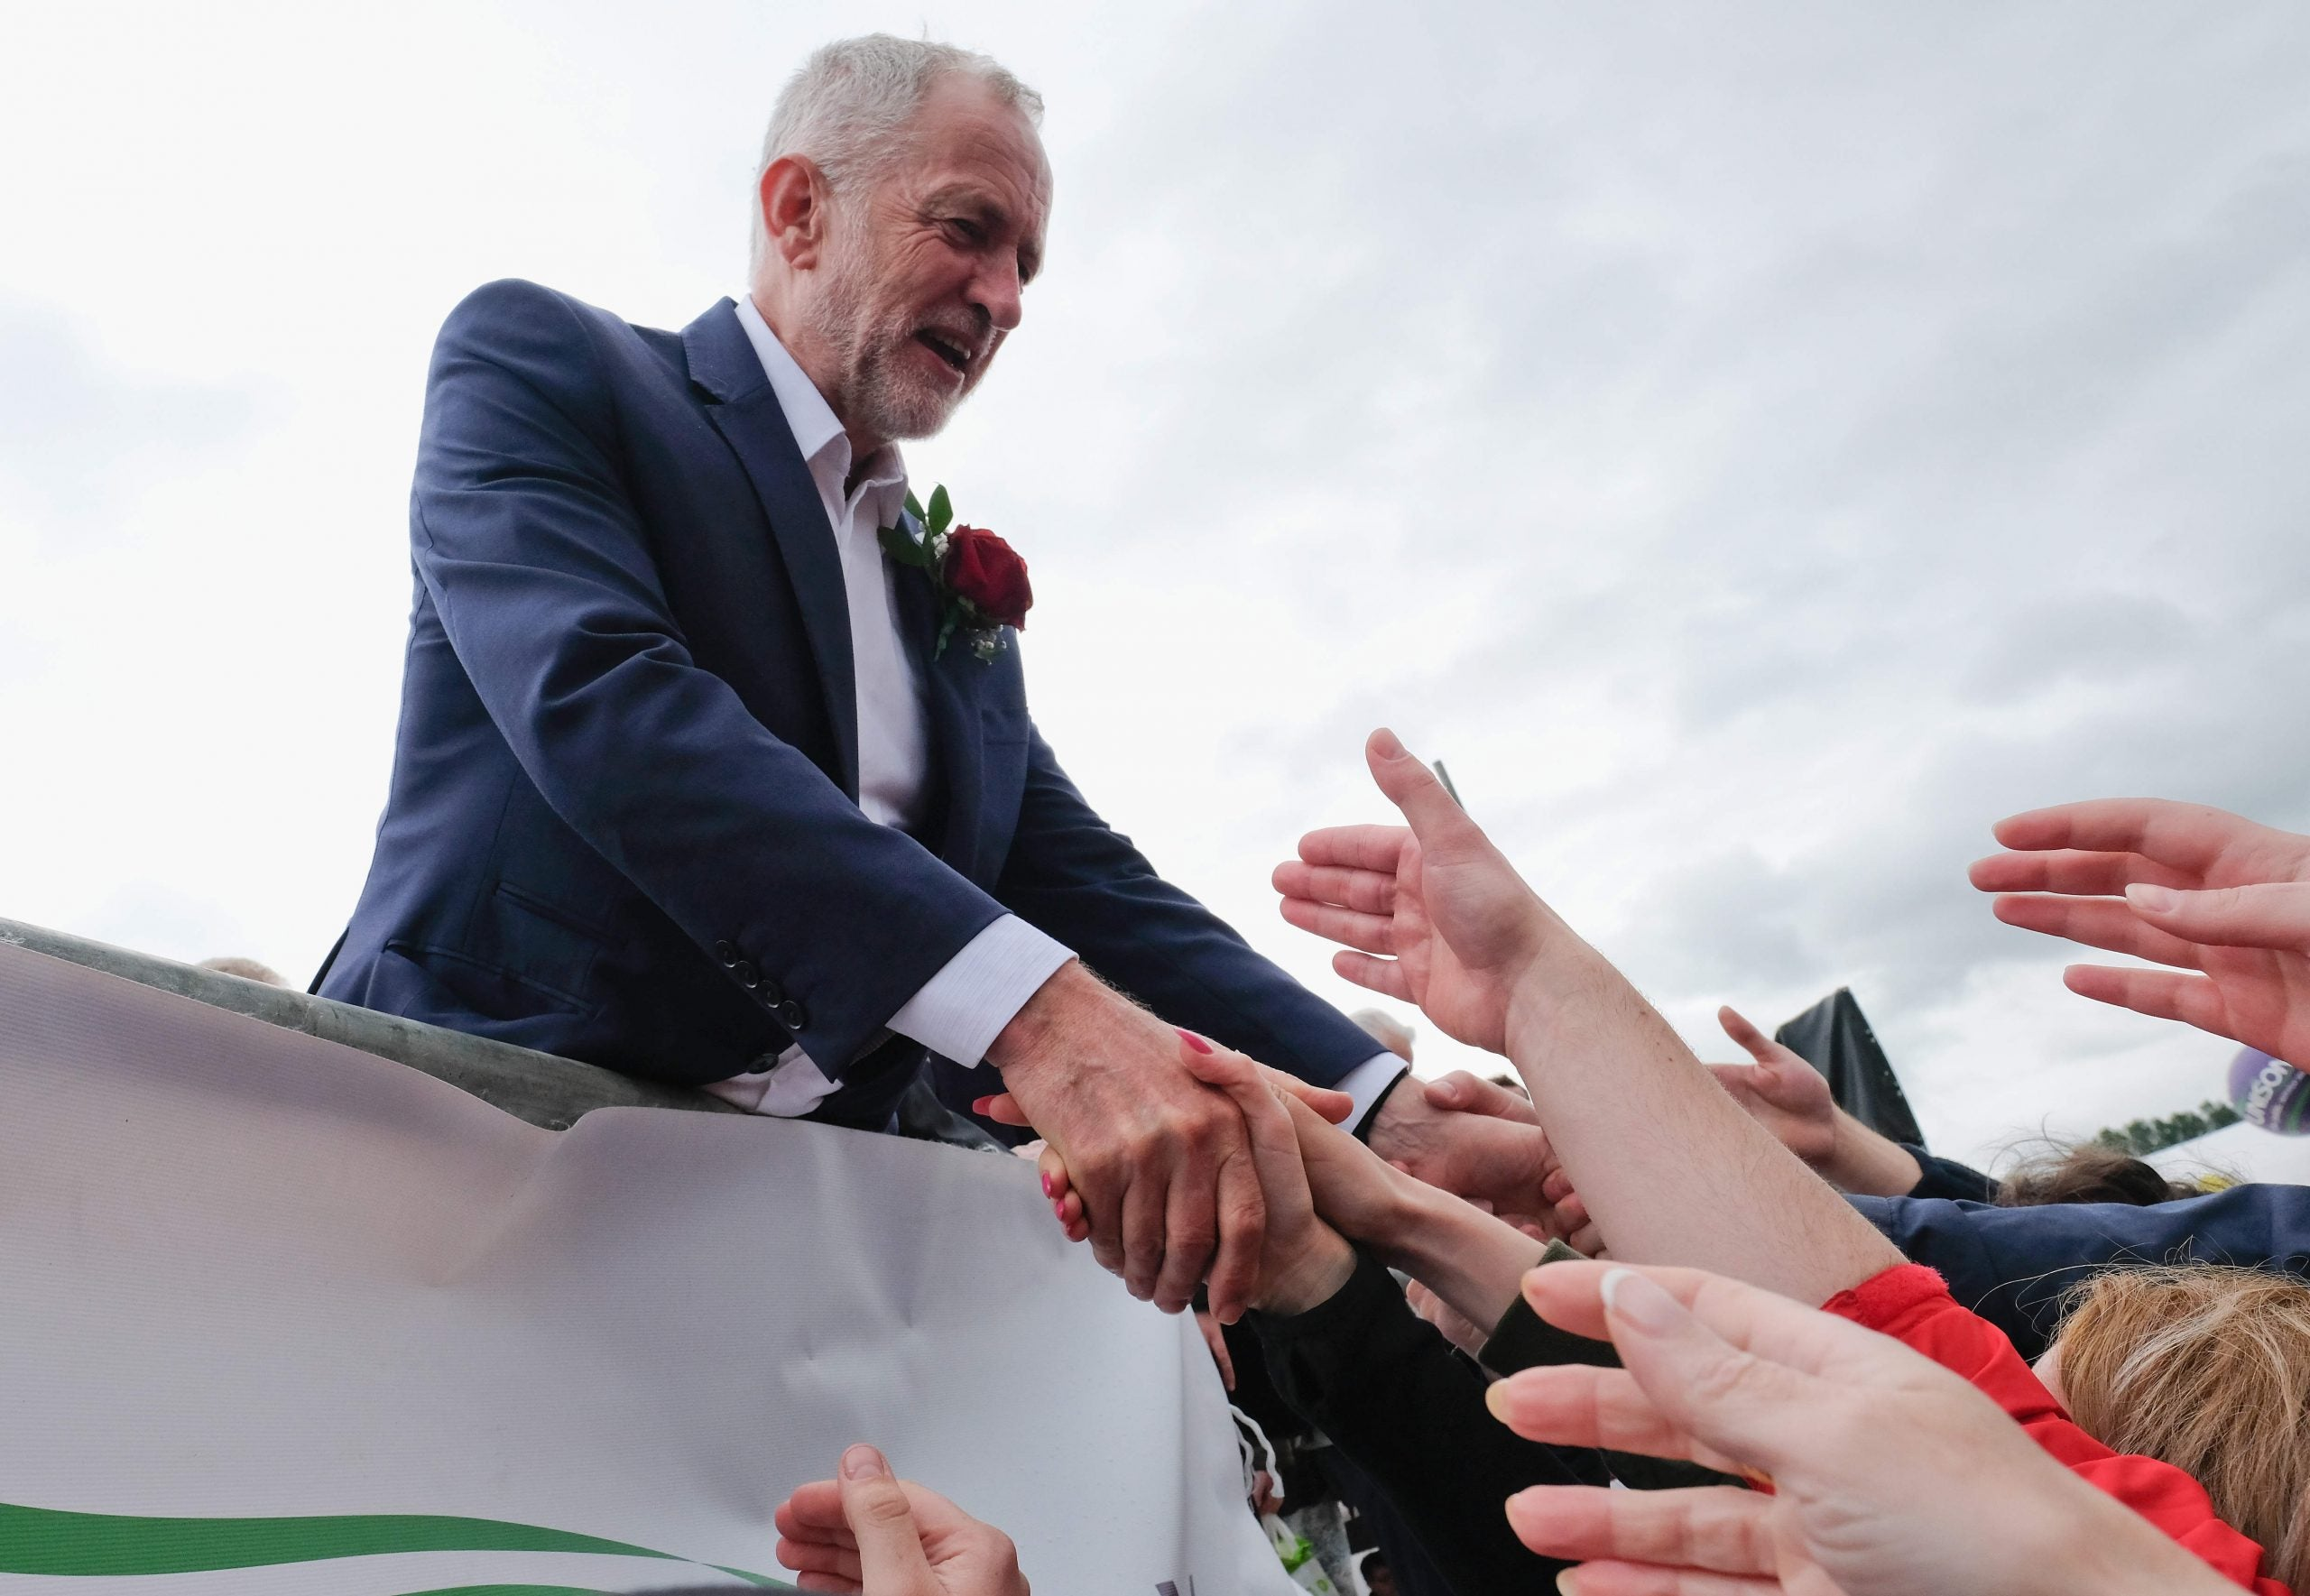 With Theresa May in charge, Labour needs Jeremy Corbyn more than ever